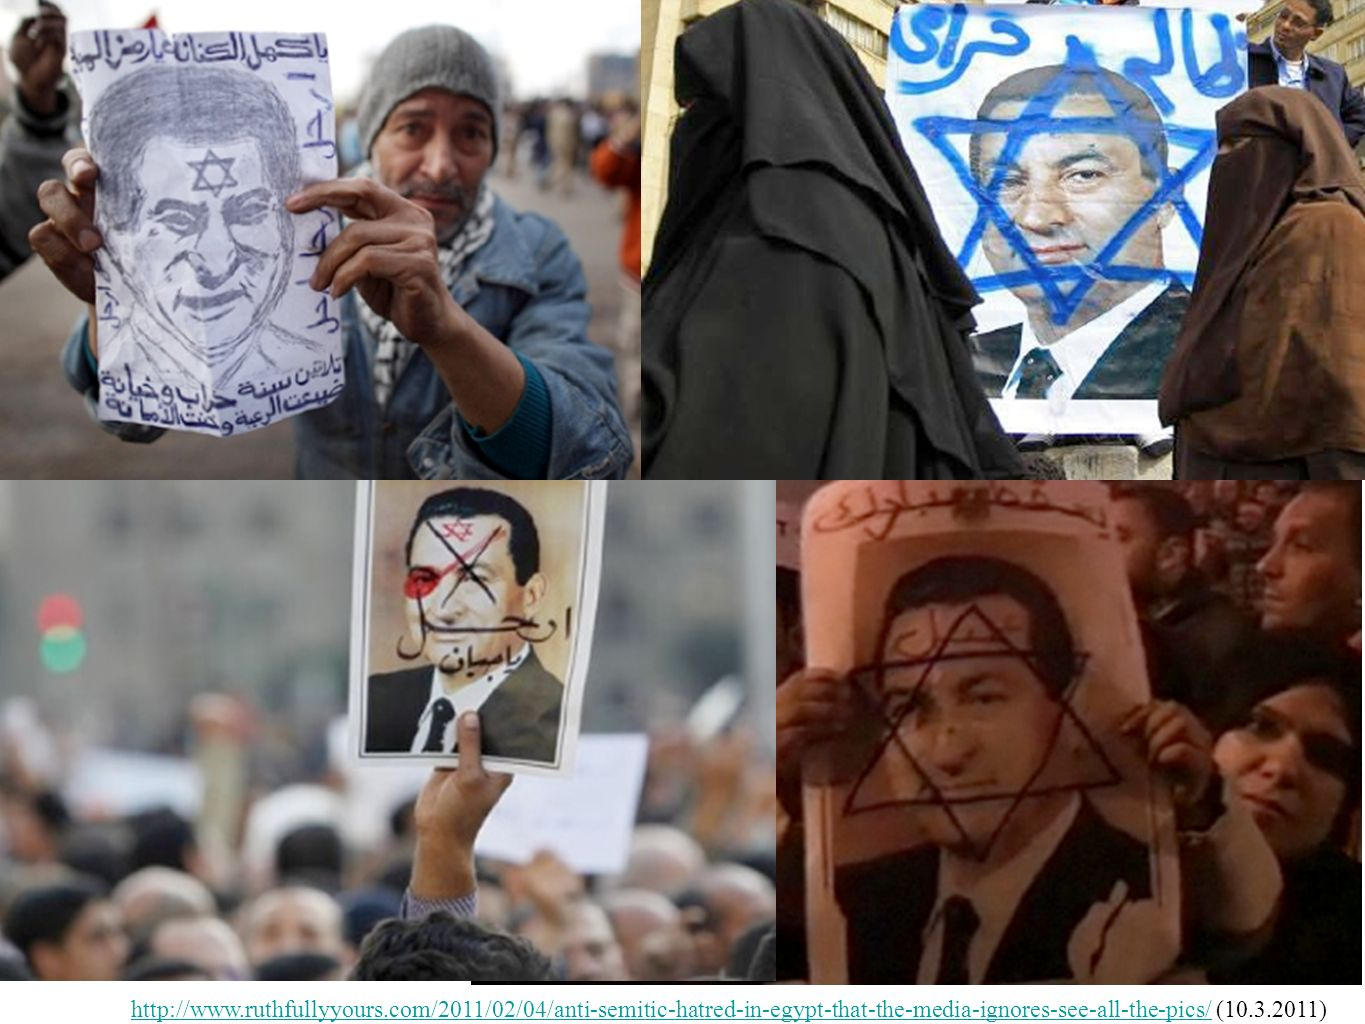 http://www.ruthfullyyours.com/2011/02/04/anti-semitic-hatred-in-egypt-that-the-media-ignores-see-all-the-pics/http://www.ruthfullyyours.com/2011/02/04